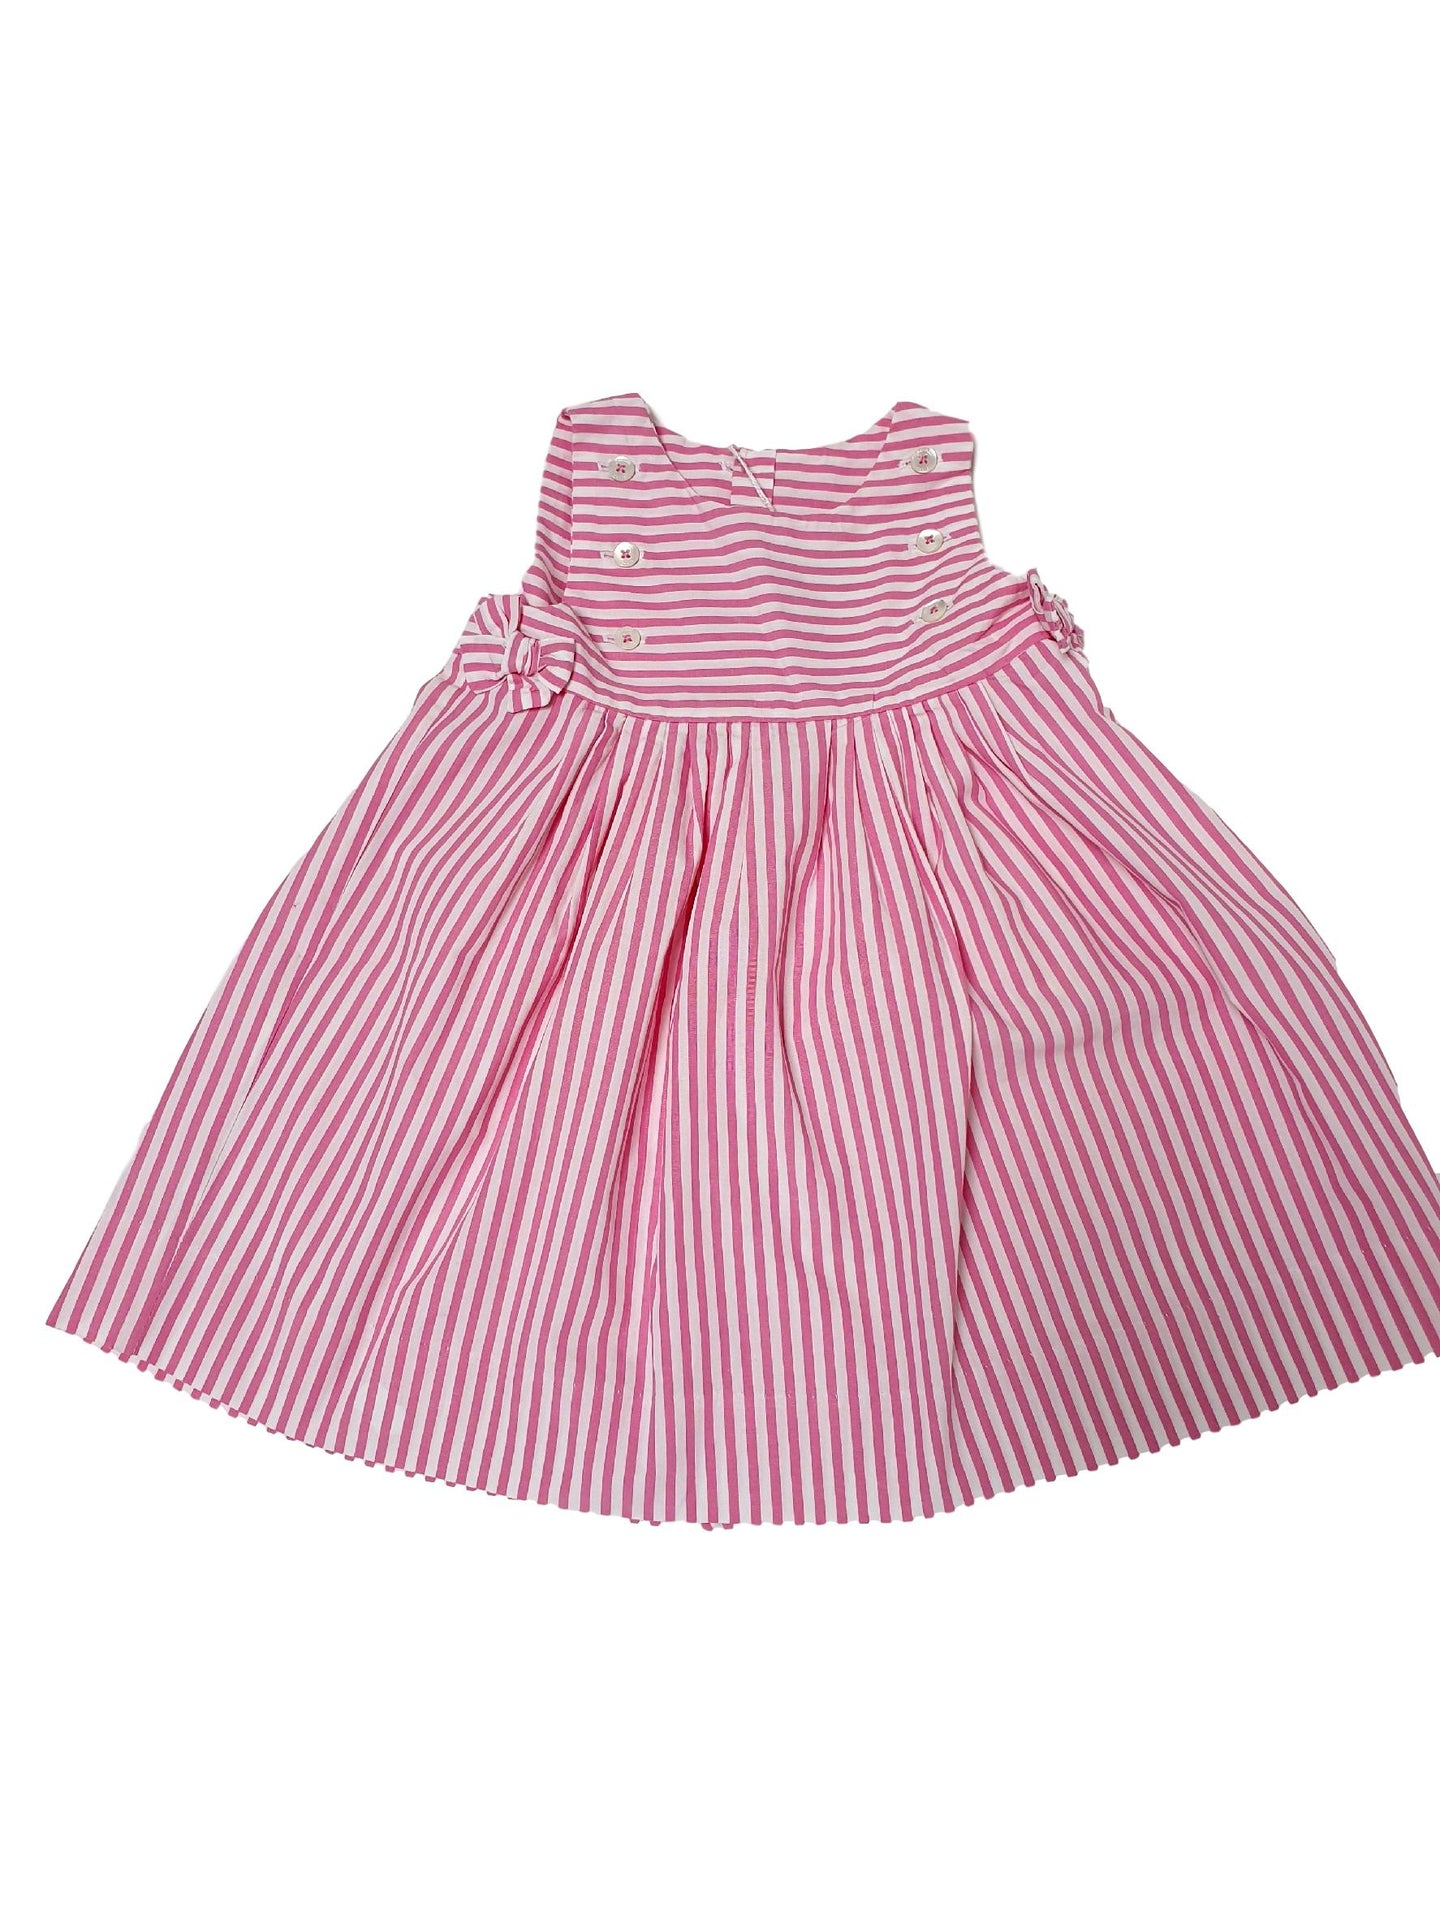 JACADI girl dress 6m